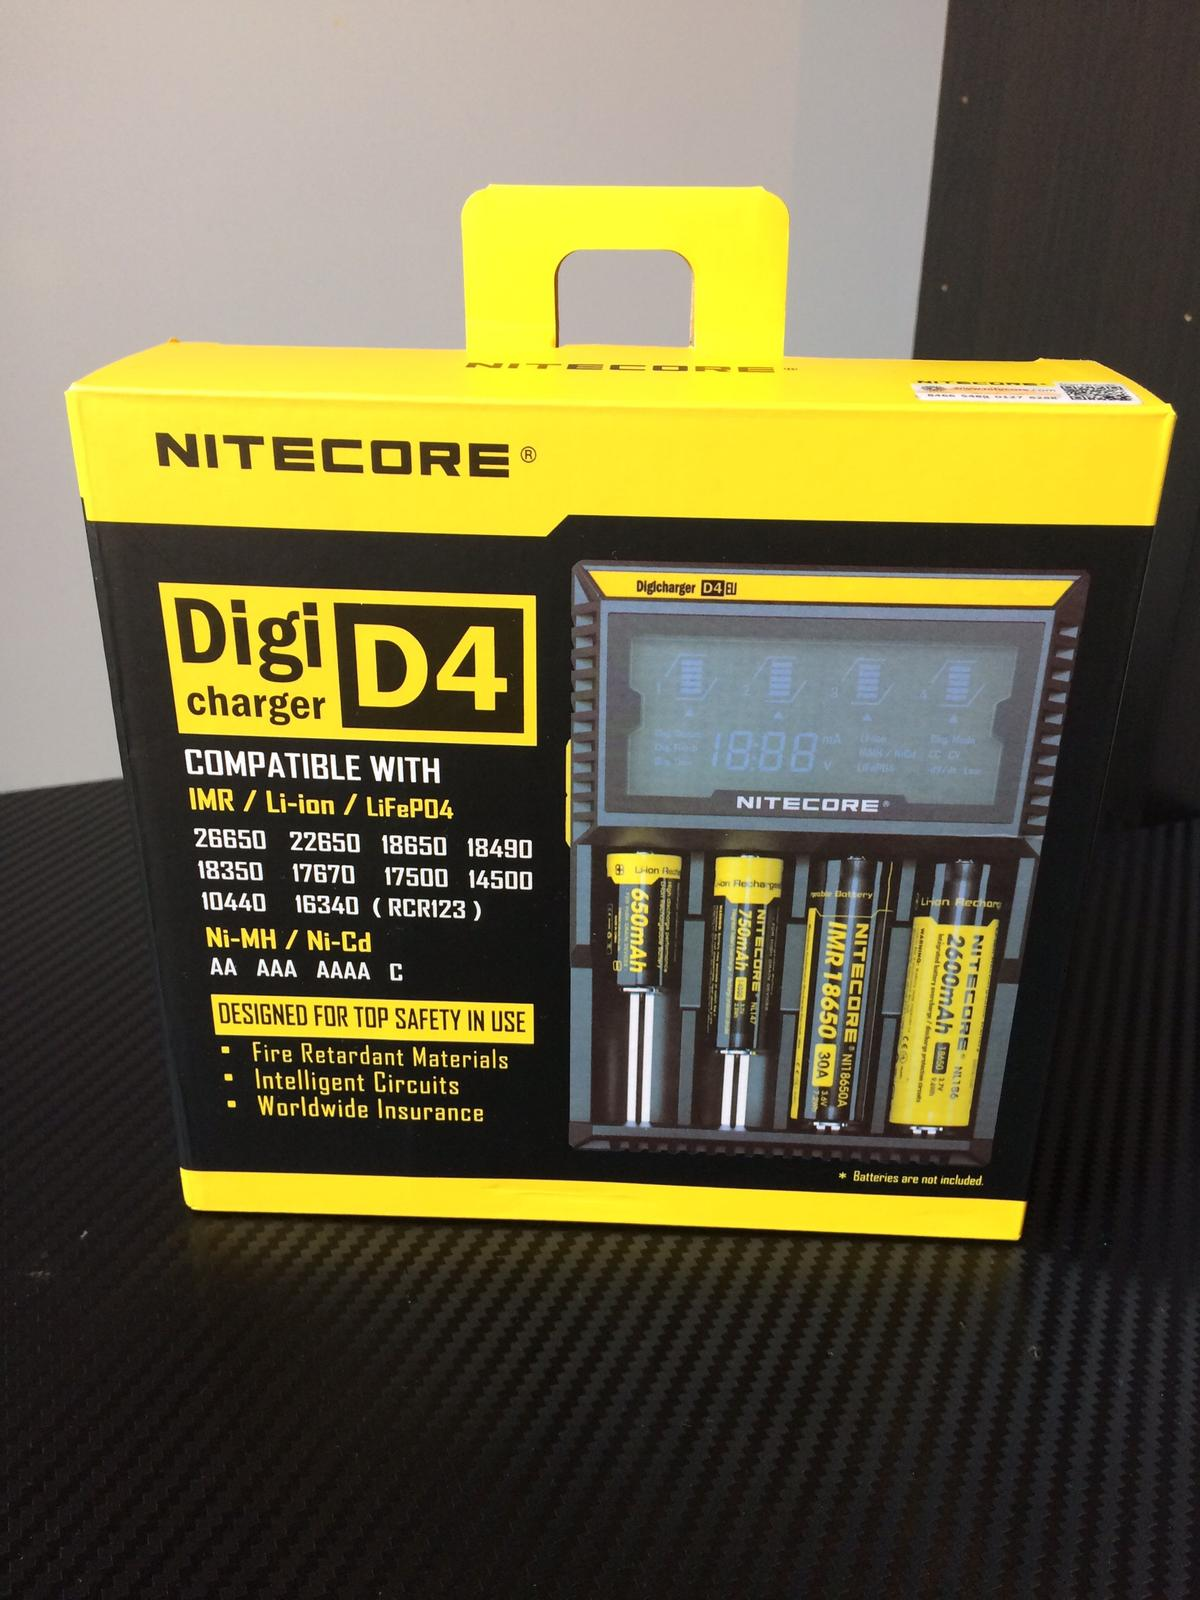 New Nitecore D4 Charger Vape Battery Charger in B23 Birmingham for